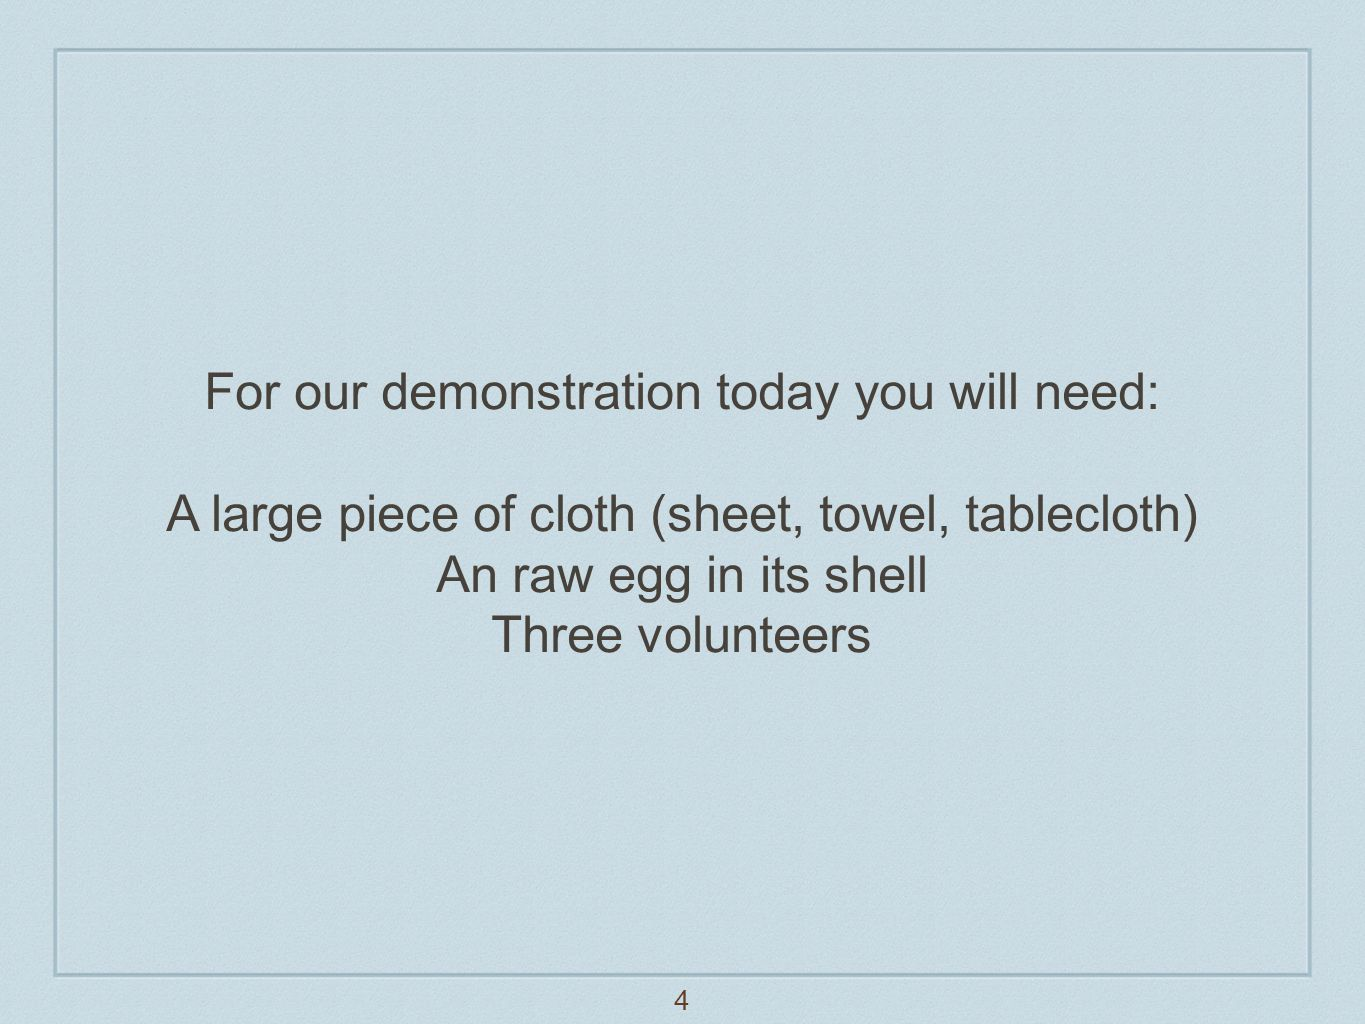 4 For our demonstration today you will need: A large piece of cloth (sheet, towel, tablecloth) An raw egg in its shell Three volunteers